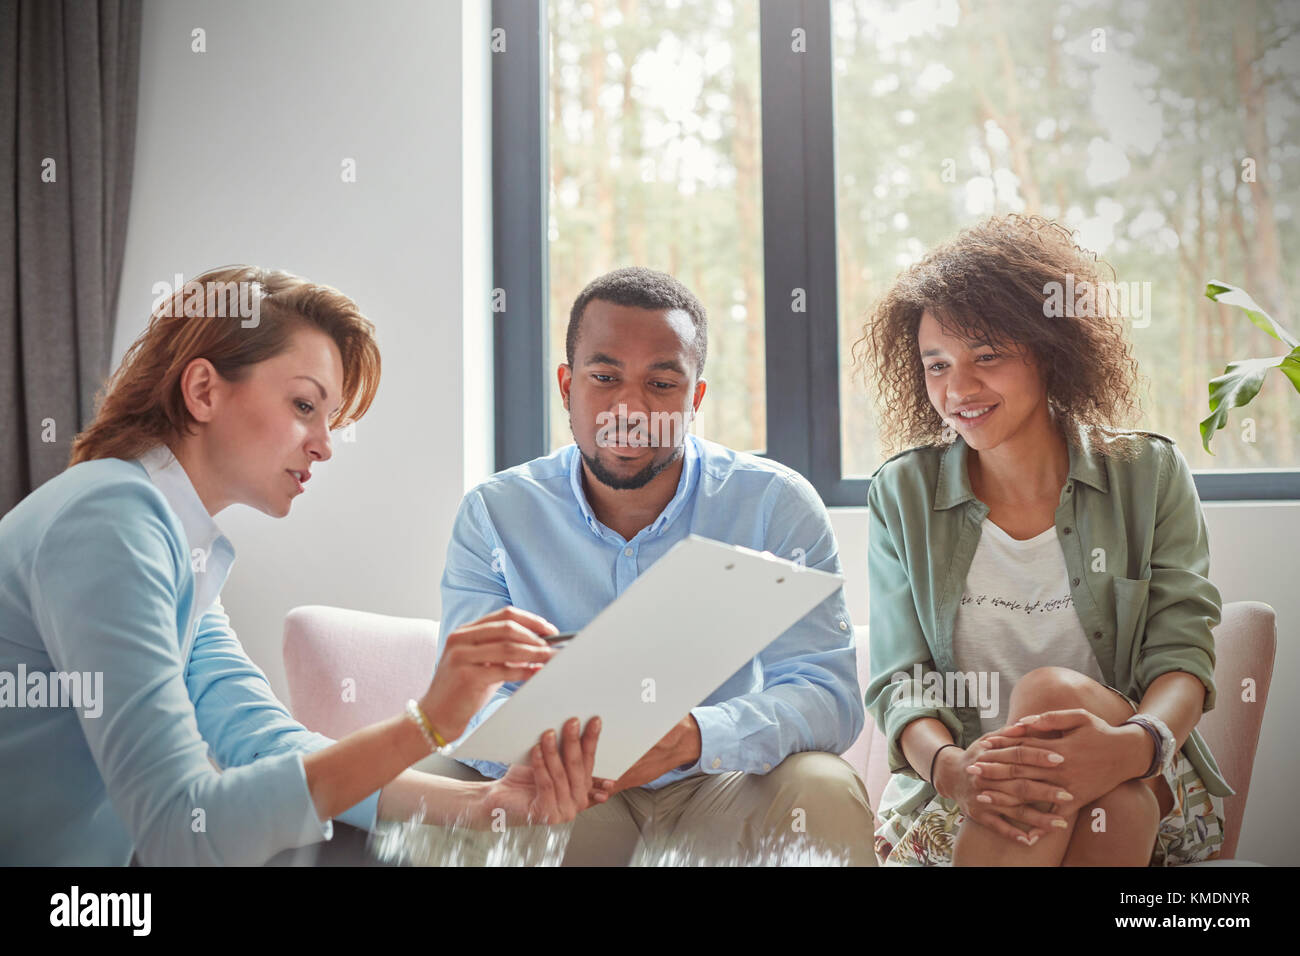 Female therapist with clipboard talking to couple in couples therapy session - Stock Image